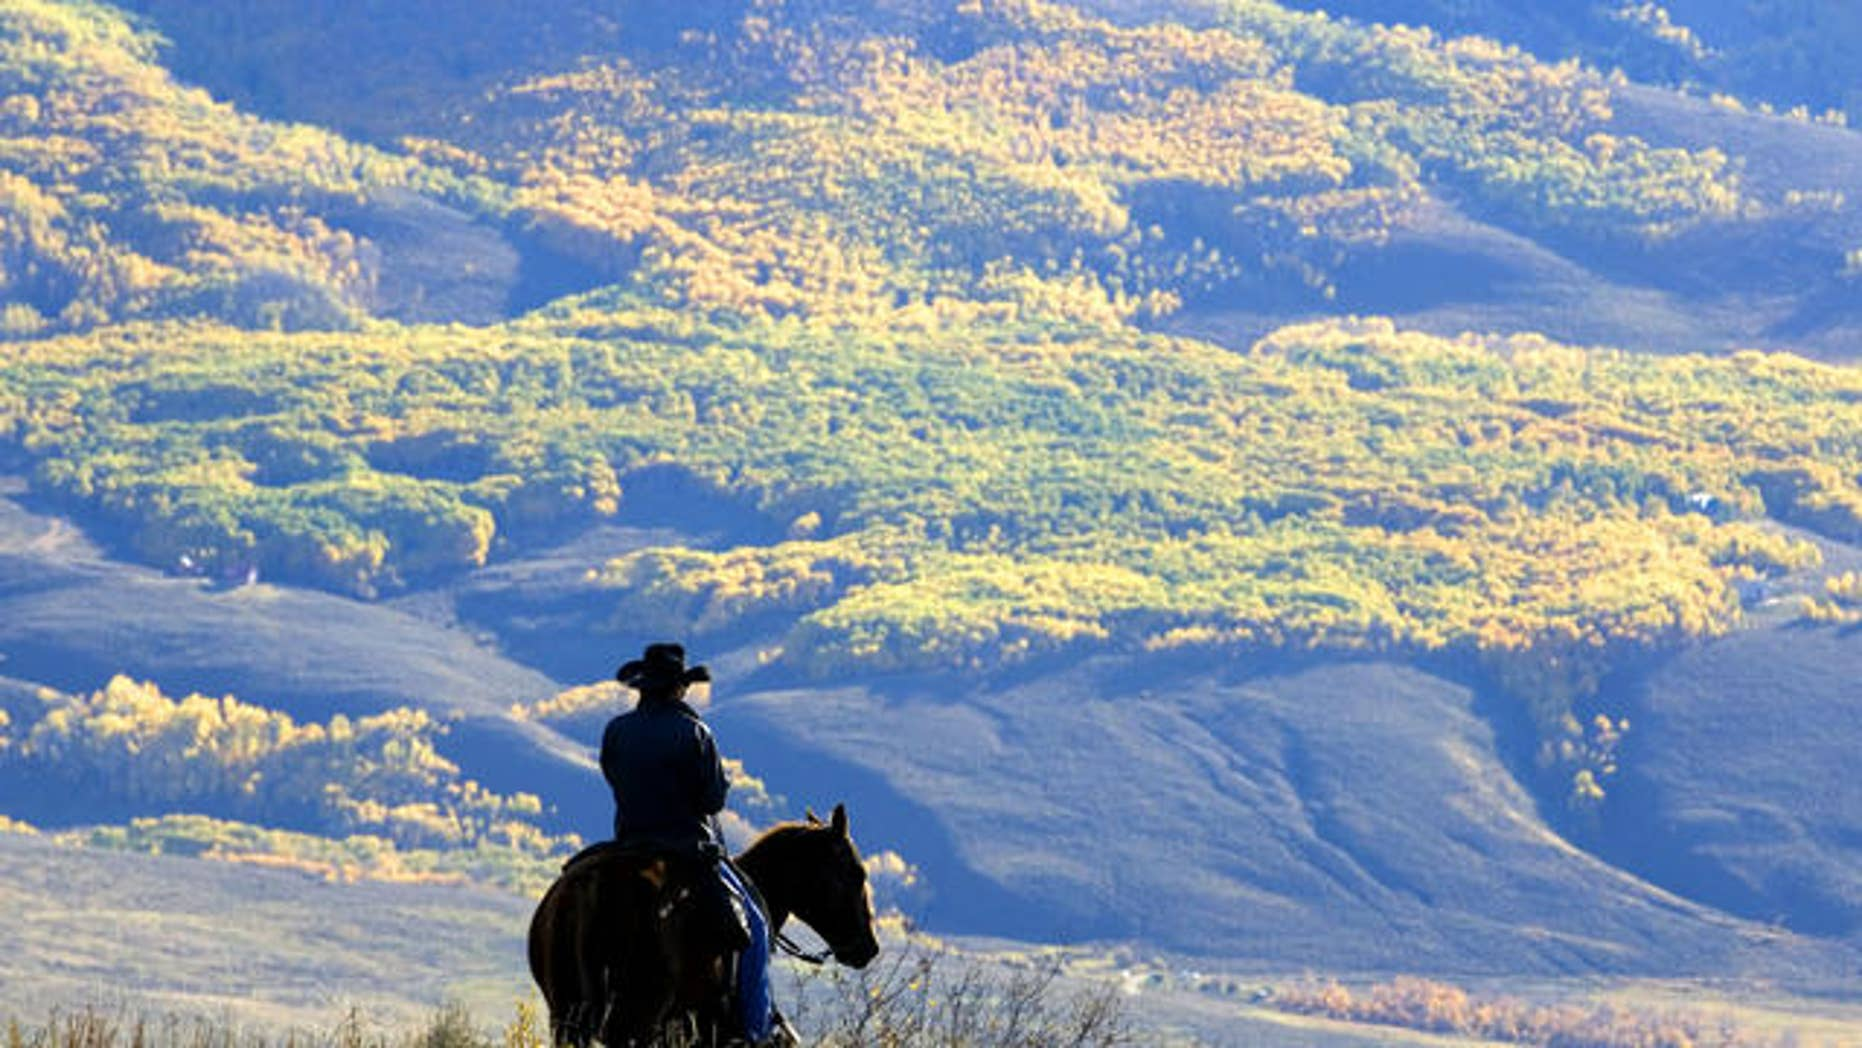 Wrangler Doug Washburn, of Crested Butte, Colo. overlooks aspen trees with their autumn colors, near Jacks Cabin in the Slate River Valley near Crested Butte, Colo. while gathering the Spann cattle from the U.S. National Forest lands, Friday, Oct. 5, 2007.  (AP Photo/Nathan Bilow)